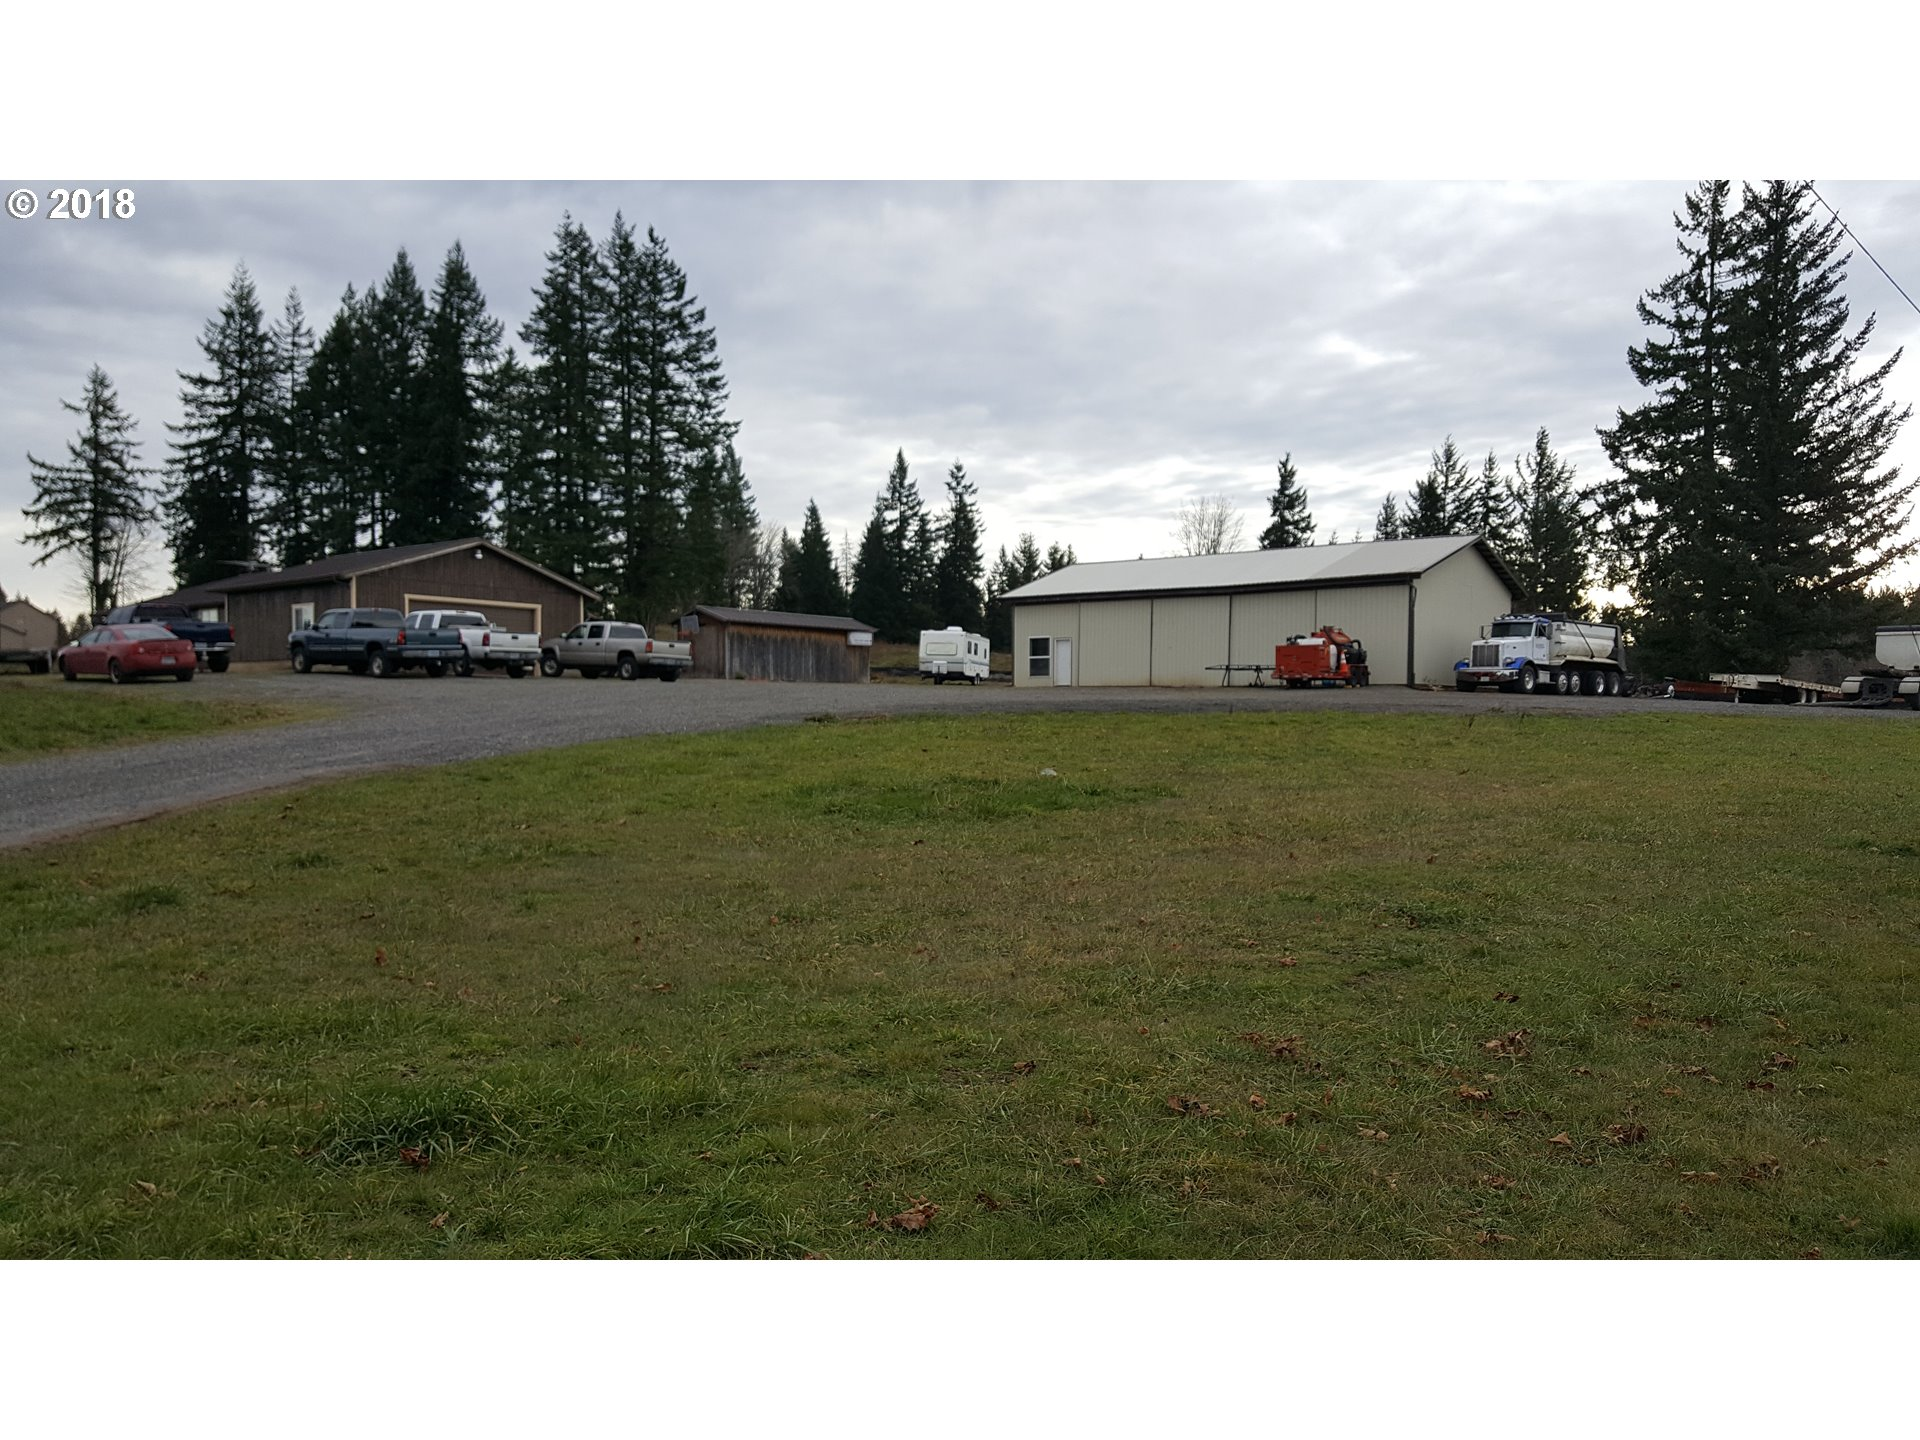 19300 Arletha Ct, Sandy, OR 97055